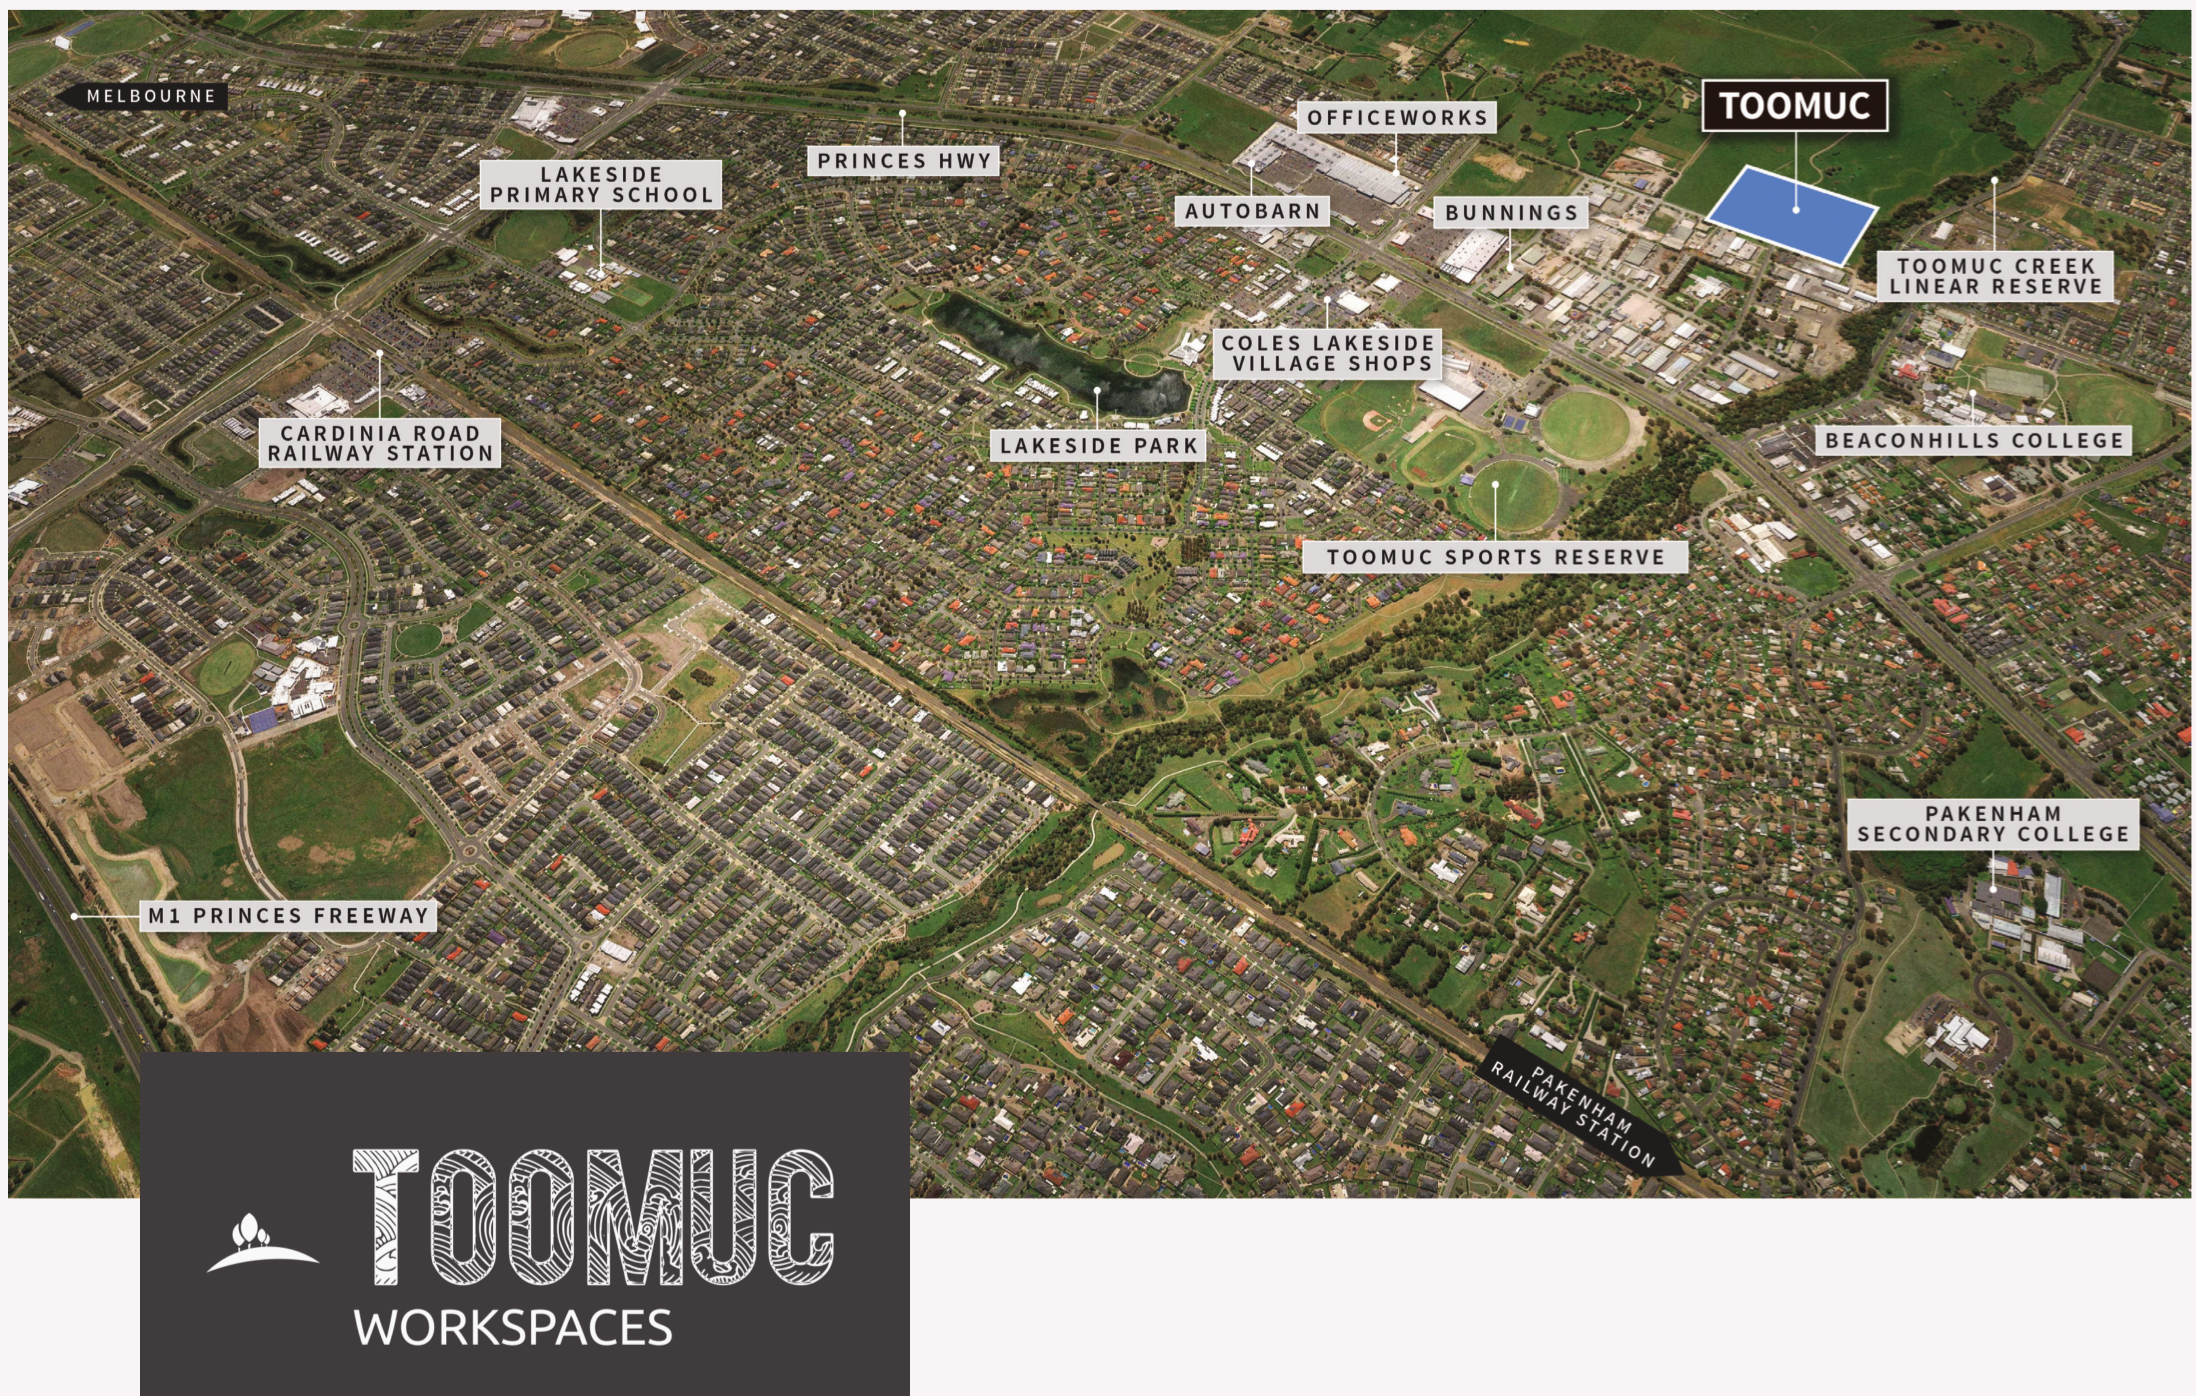 Toomuc Workspaces, Industrial Land and Warehouse for Sale Locality Map